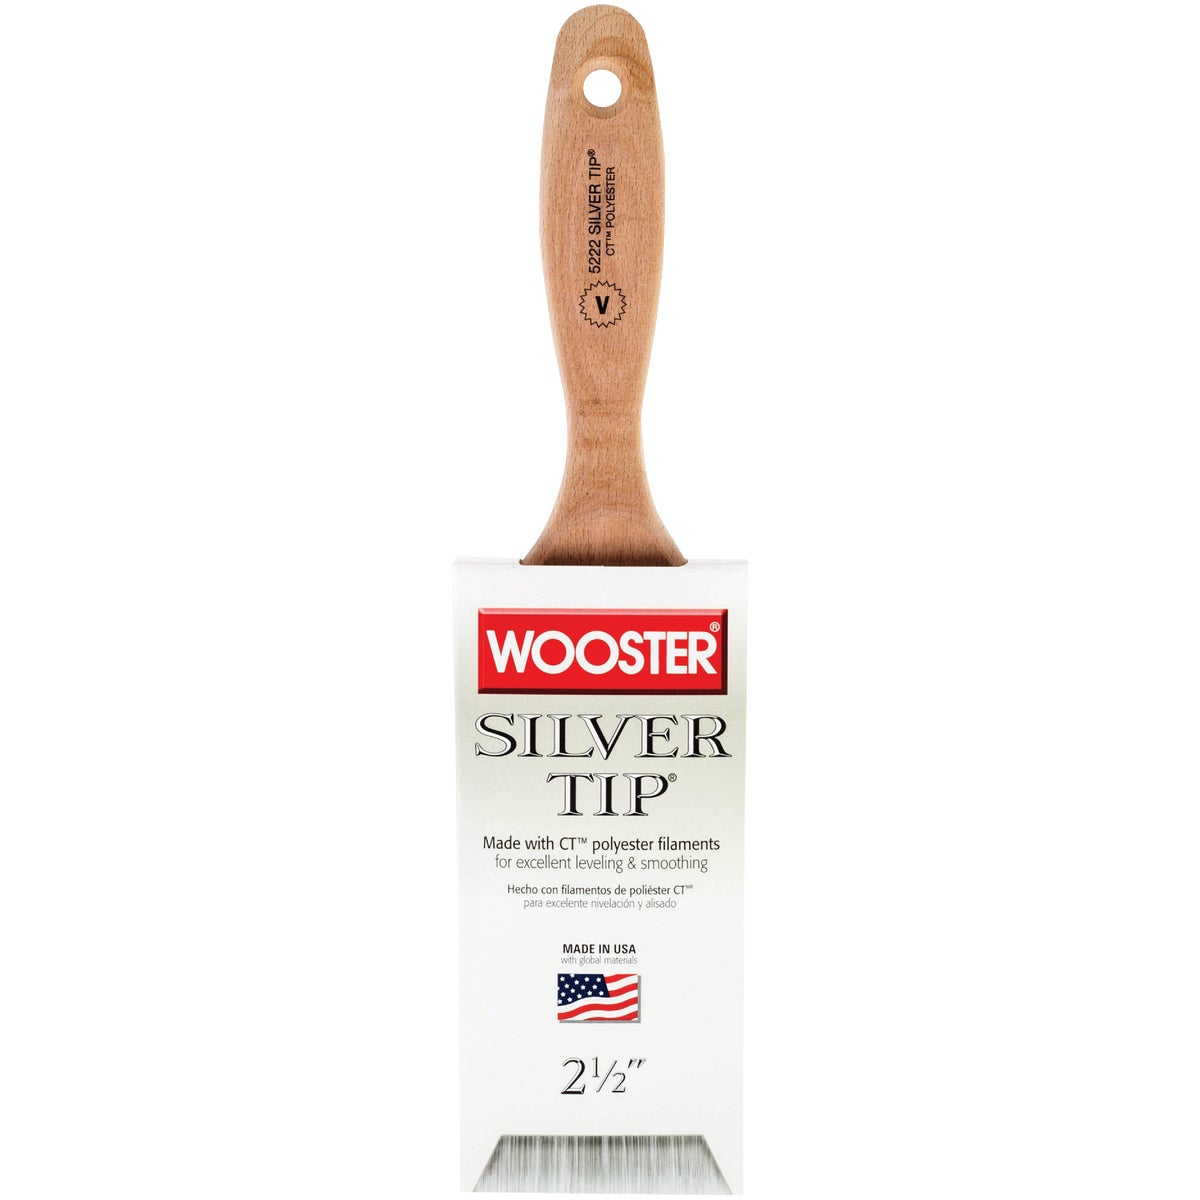 "2.5"" SILVER TIP BRUSH - 5222-2.5 by Wooster Brush Co"